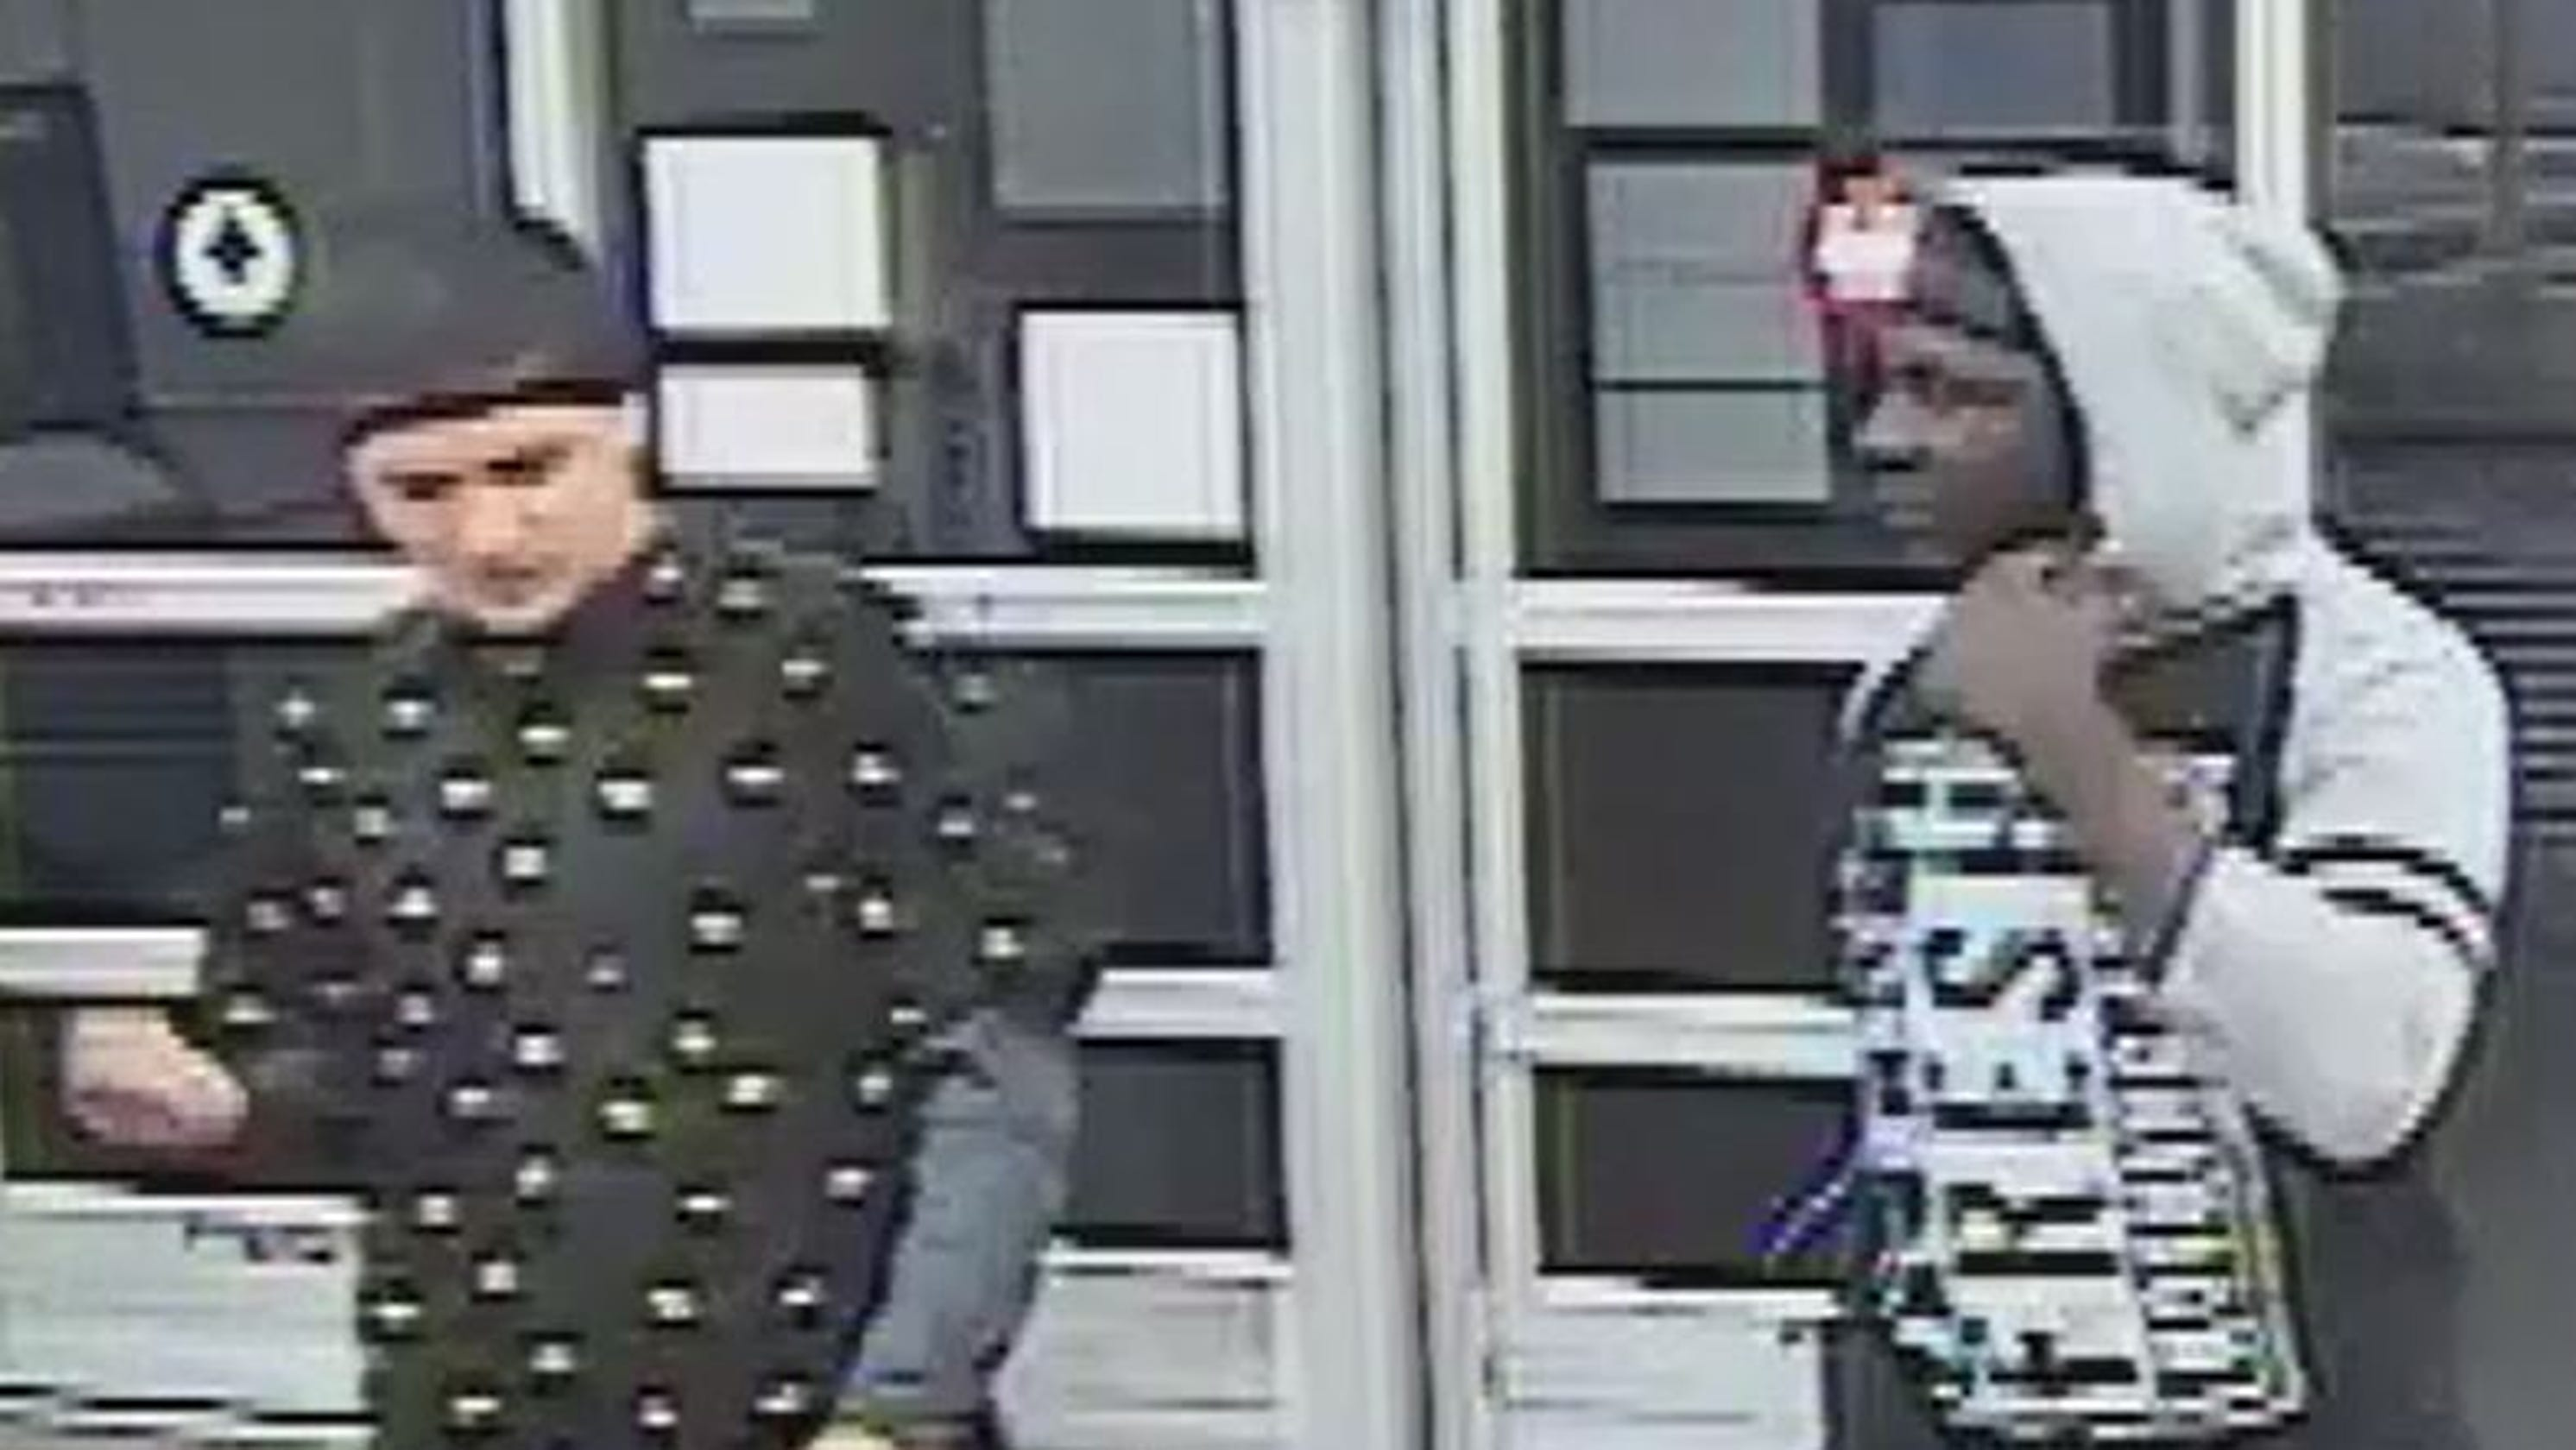 Suspects allegedly shoplift $4,000 in electronics from Walmart